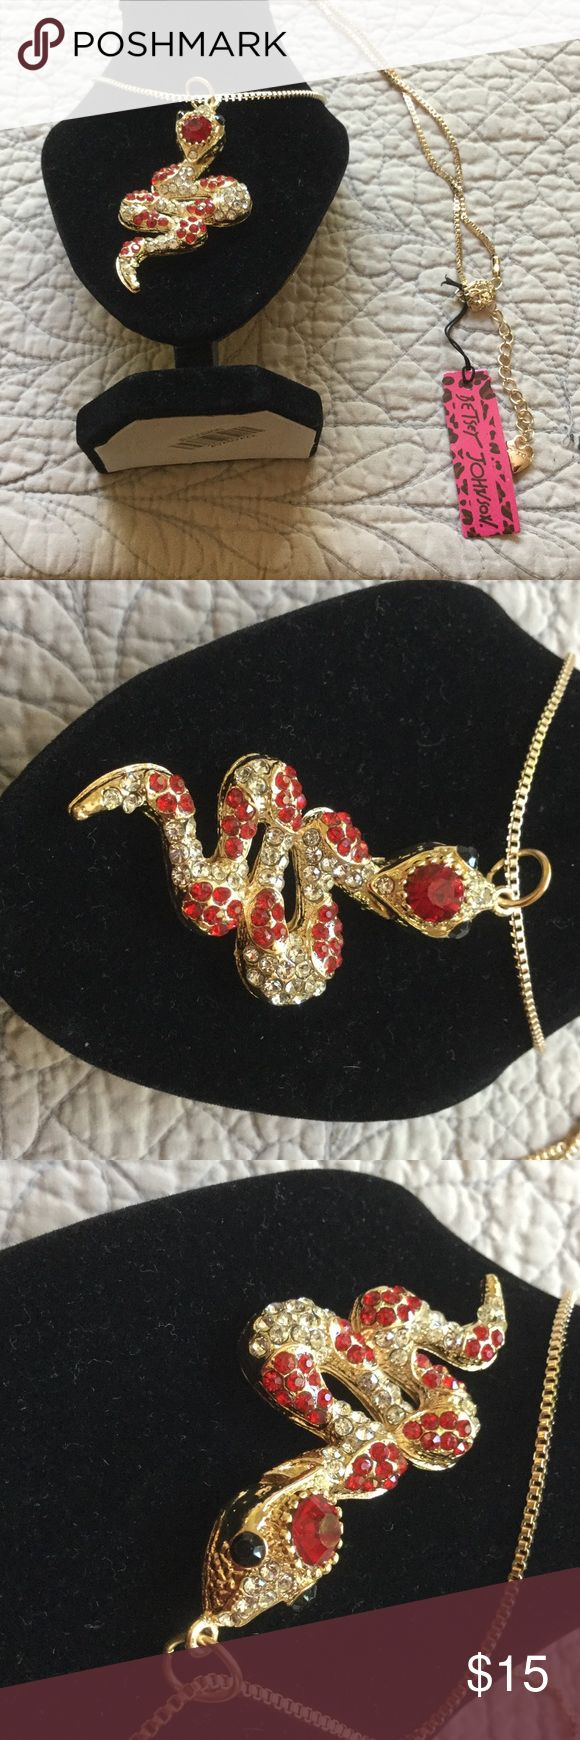 Betsey Johnson Snake Necklace New, 16 inches long with chain.  The snake is 2 1/2 inches long.  Snake is gold with diamond like and red jewels with black eyes. Betsey Johnson Jewelry Necklaces